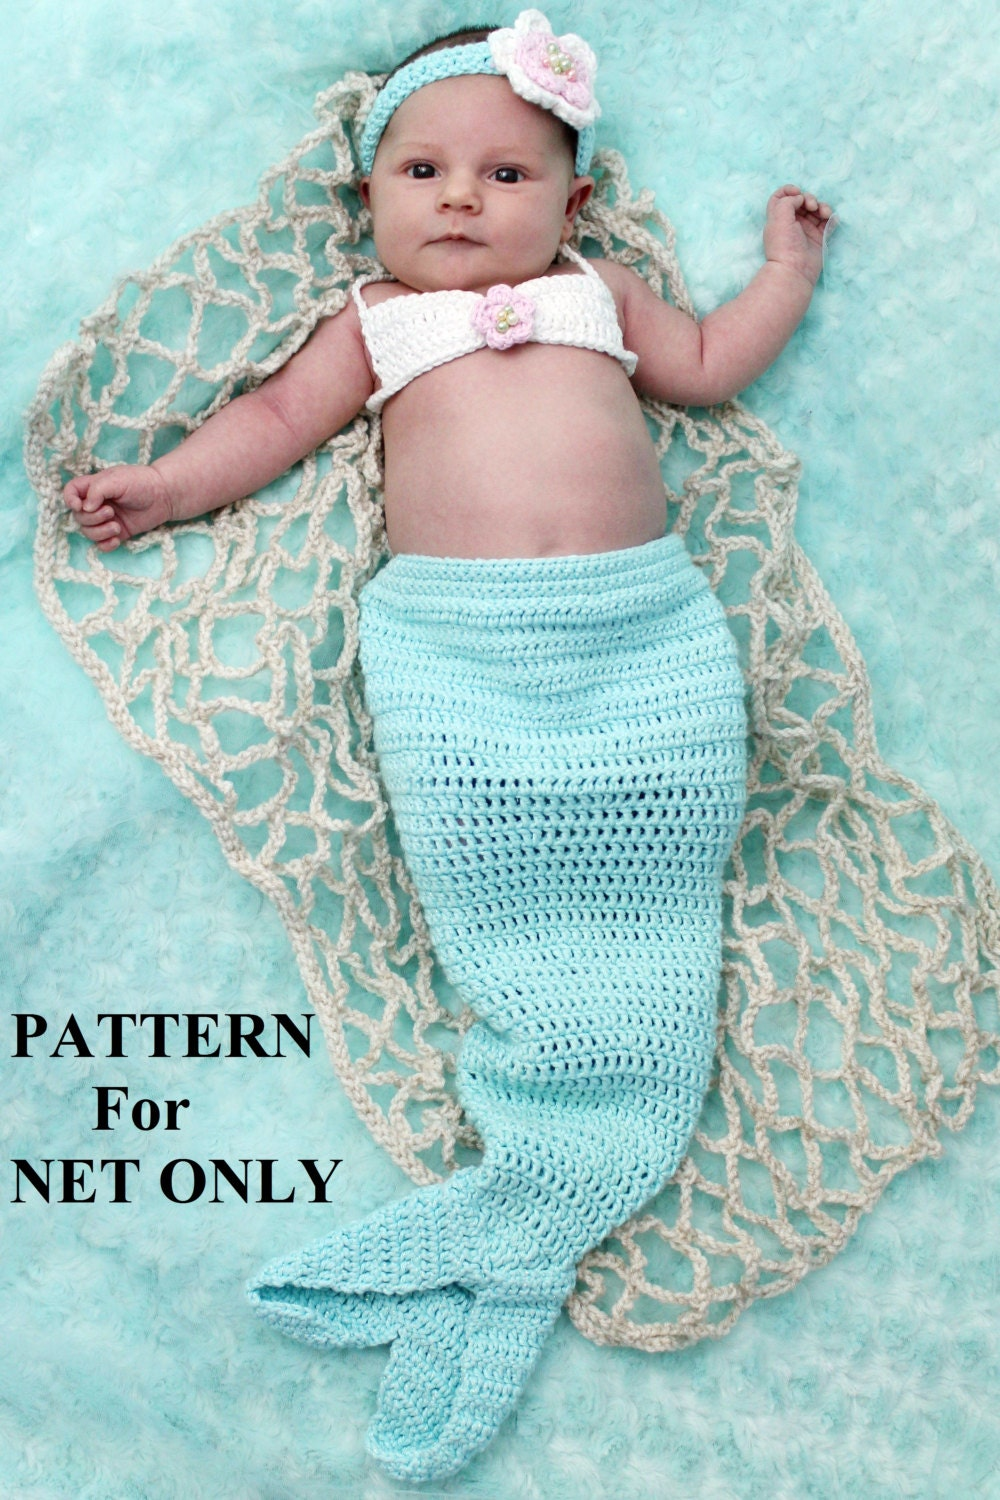 Baby Mermaid Crochet Pattern Unique Inspiration Design